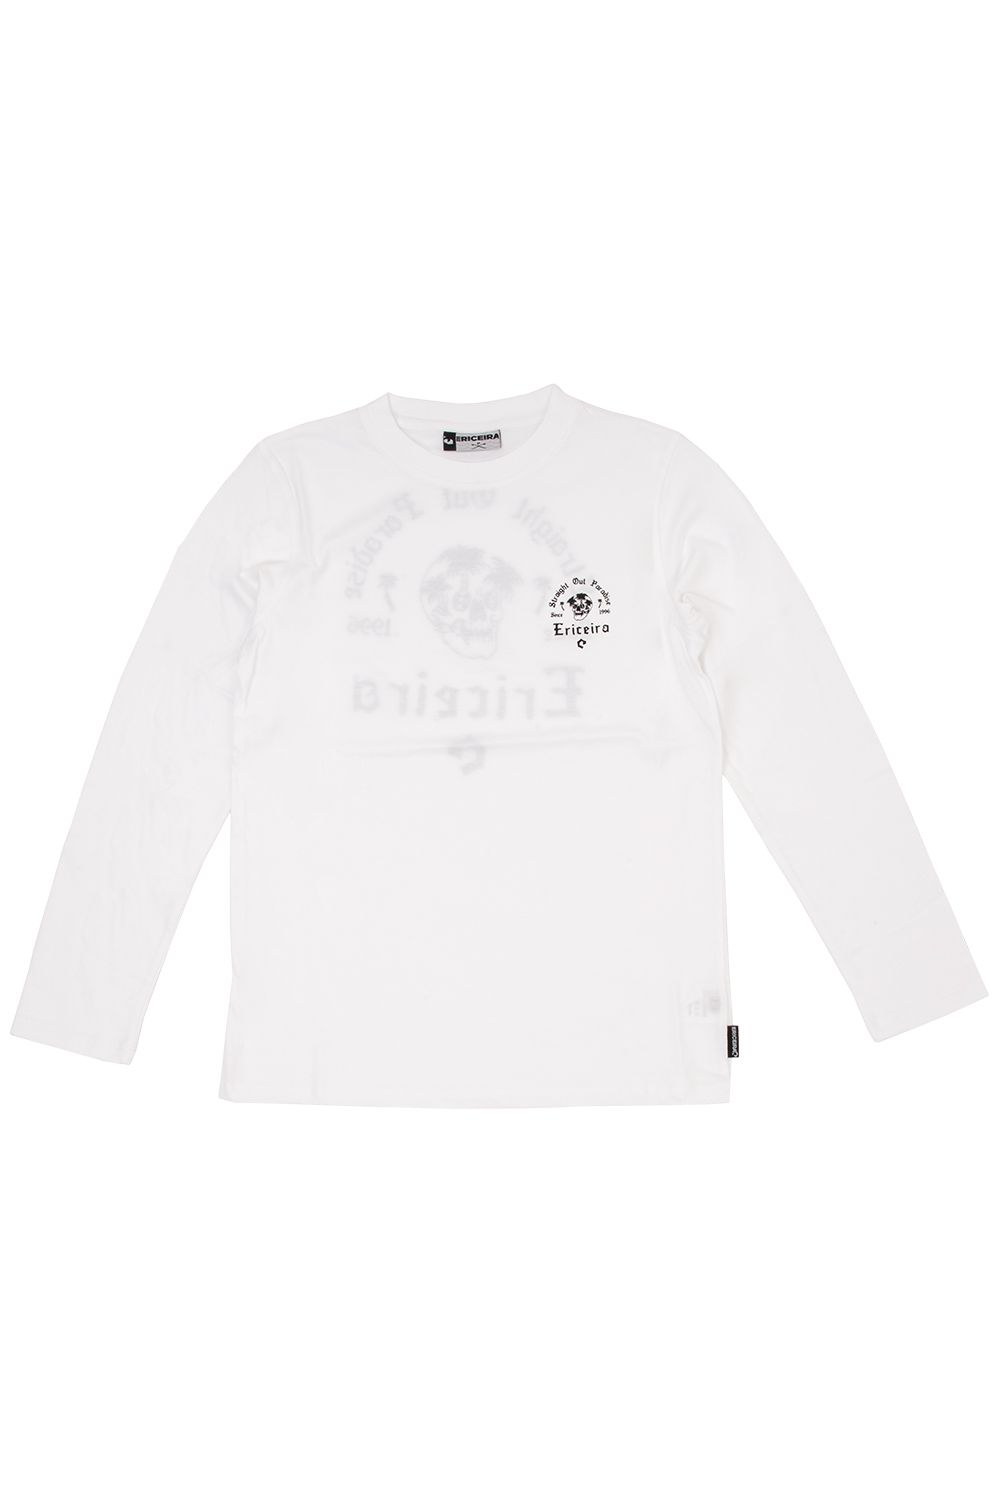 Ericeira Surf Skate L-Sleeve LOST IN PARADISE White